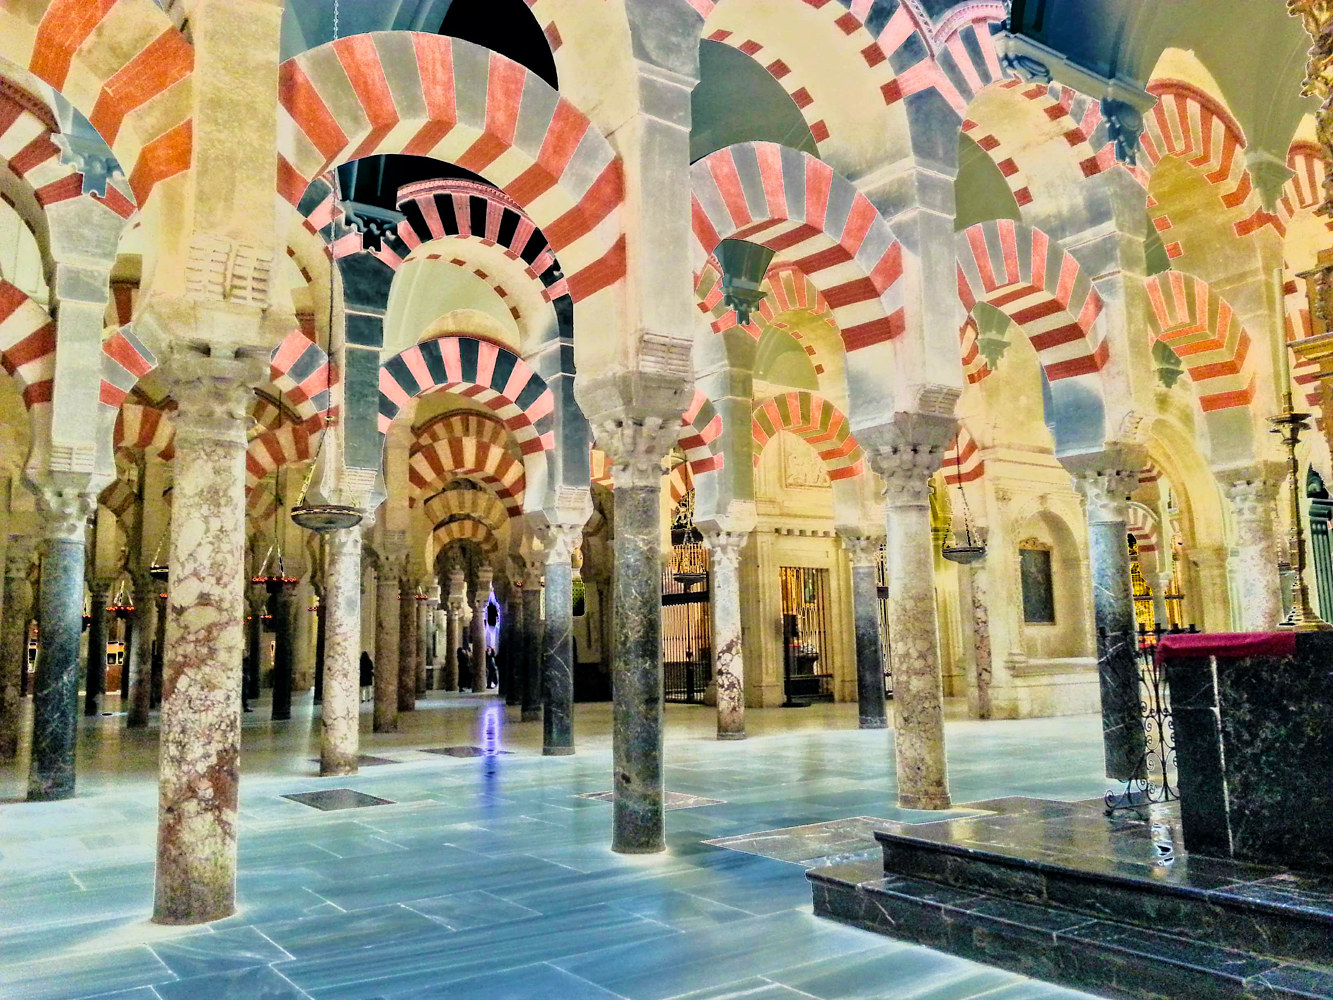 Photography Mezquita by Pamela Pitt